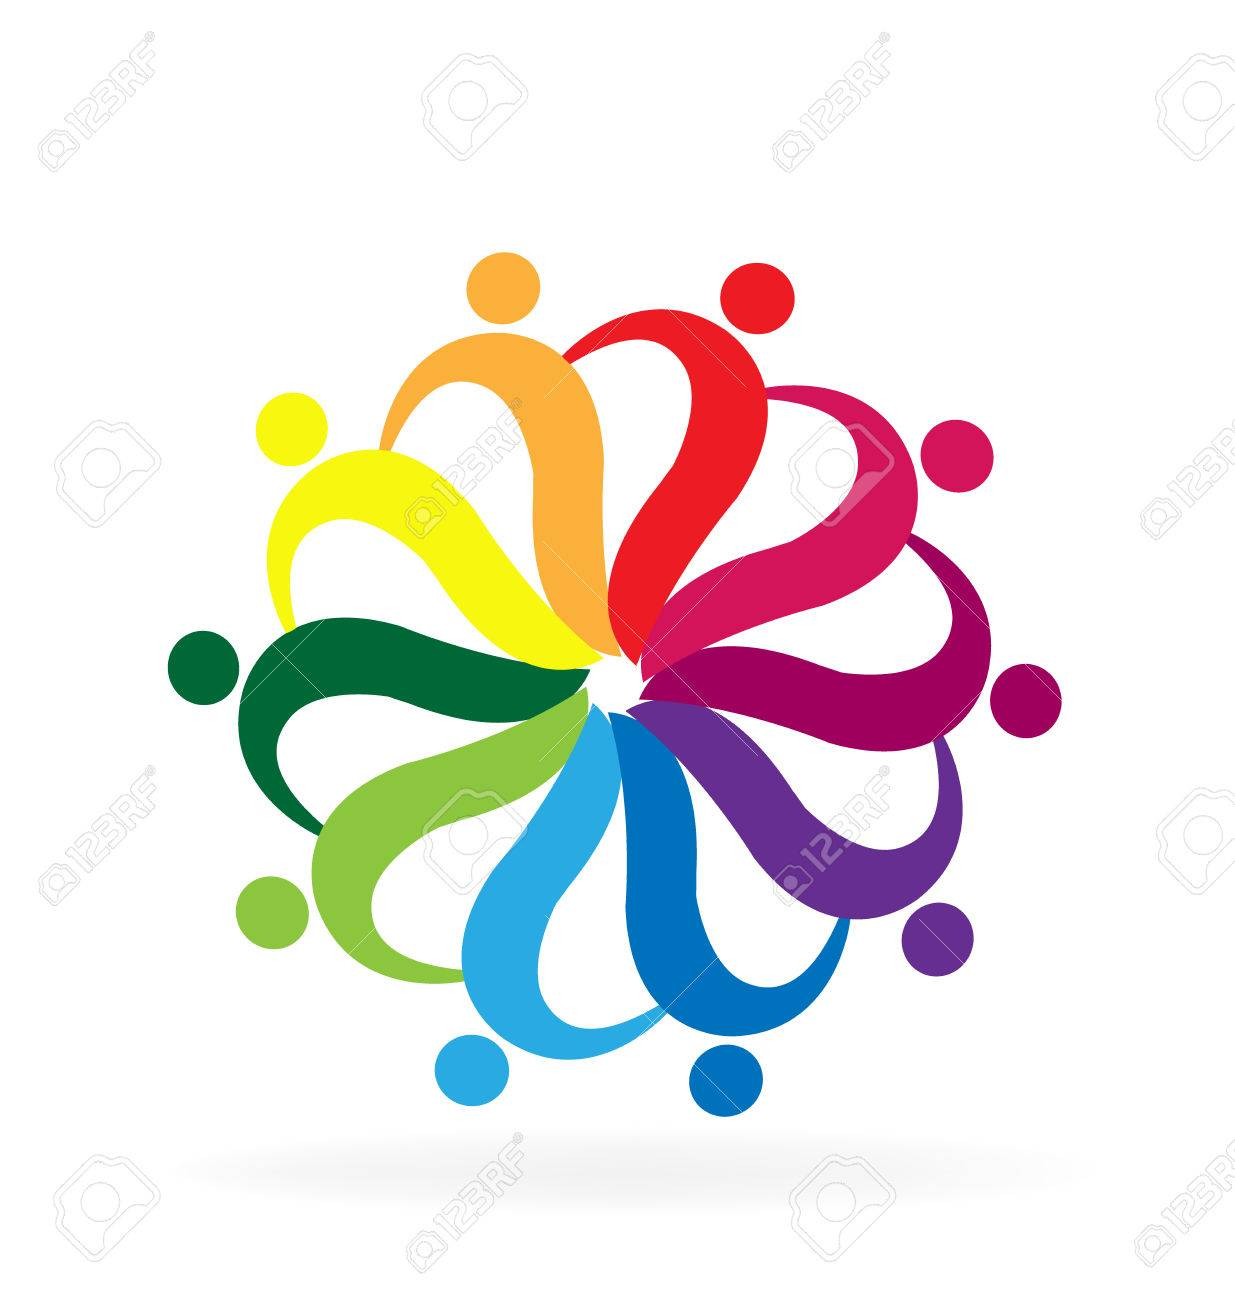 Teamwork helping people rainbow color business card logo vector teamwork helping people rainbow color business card logo vector design stock vector 68647715 reheart Images